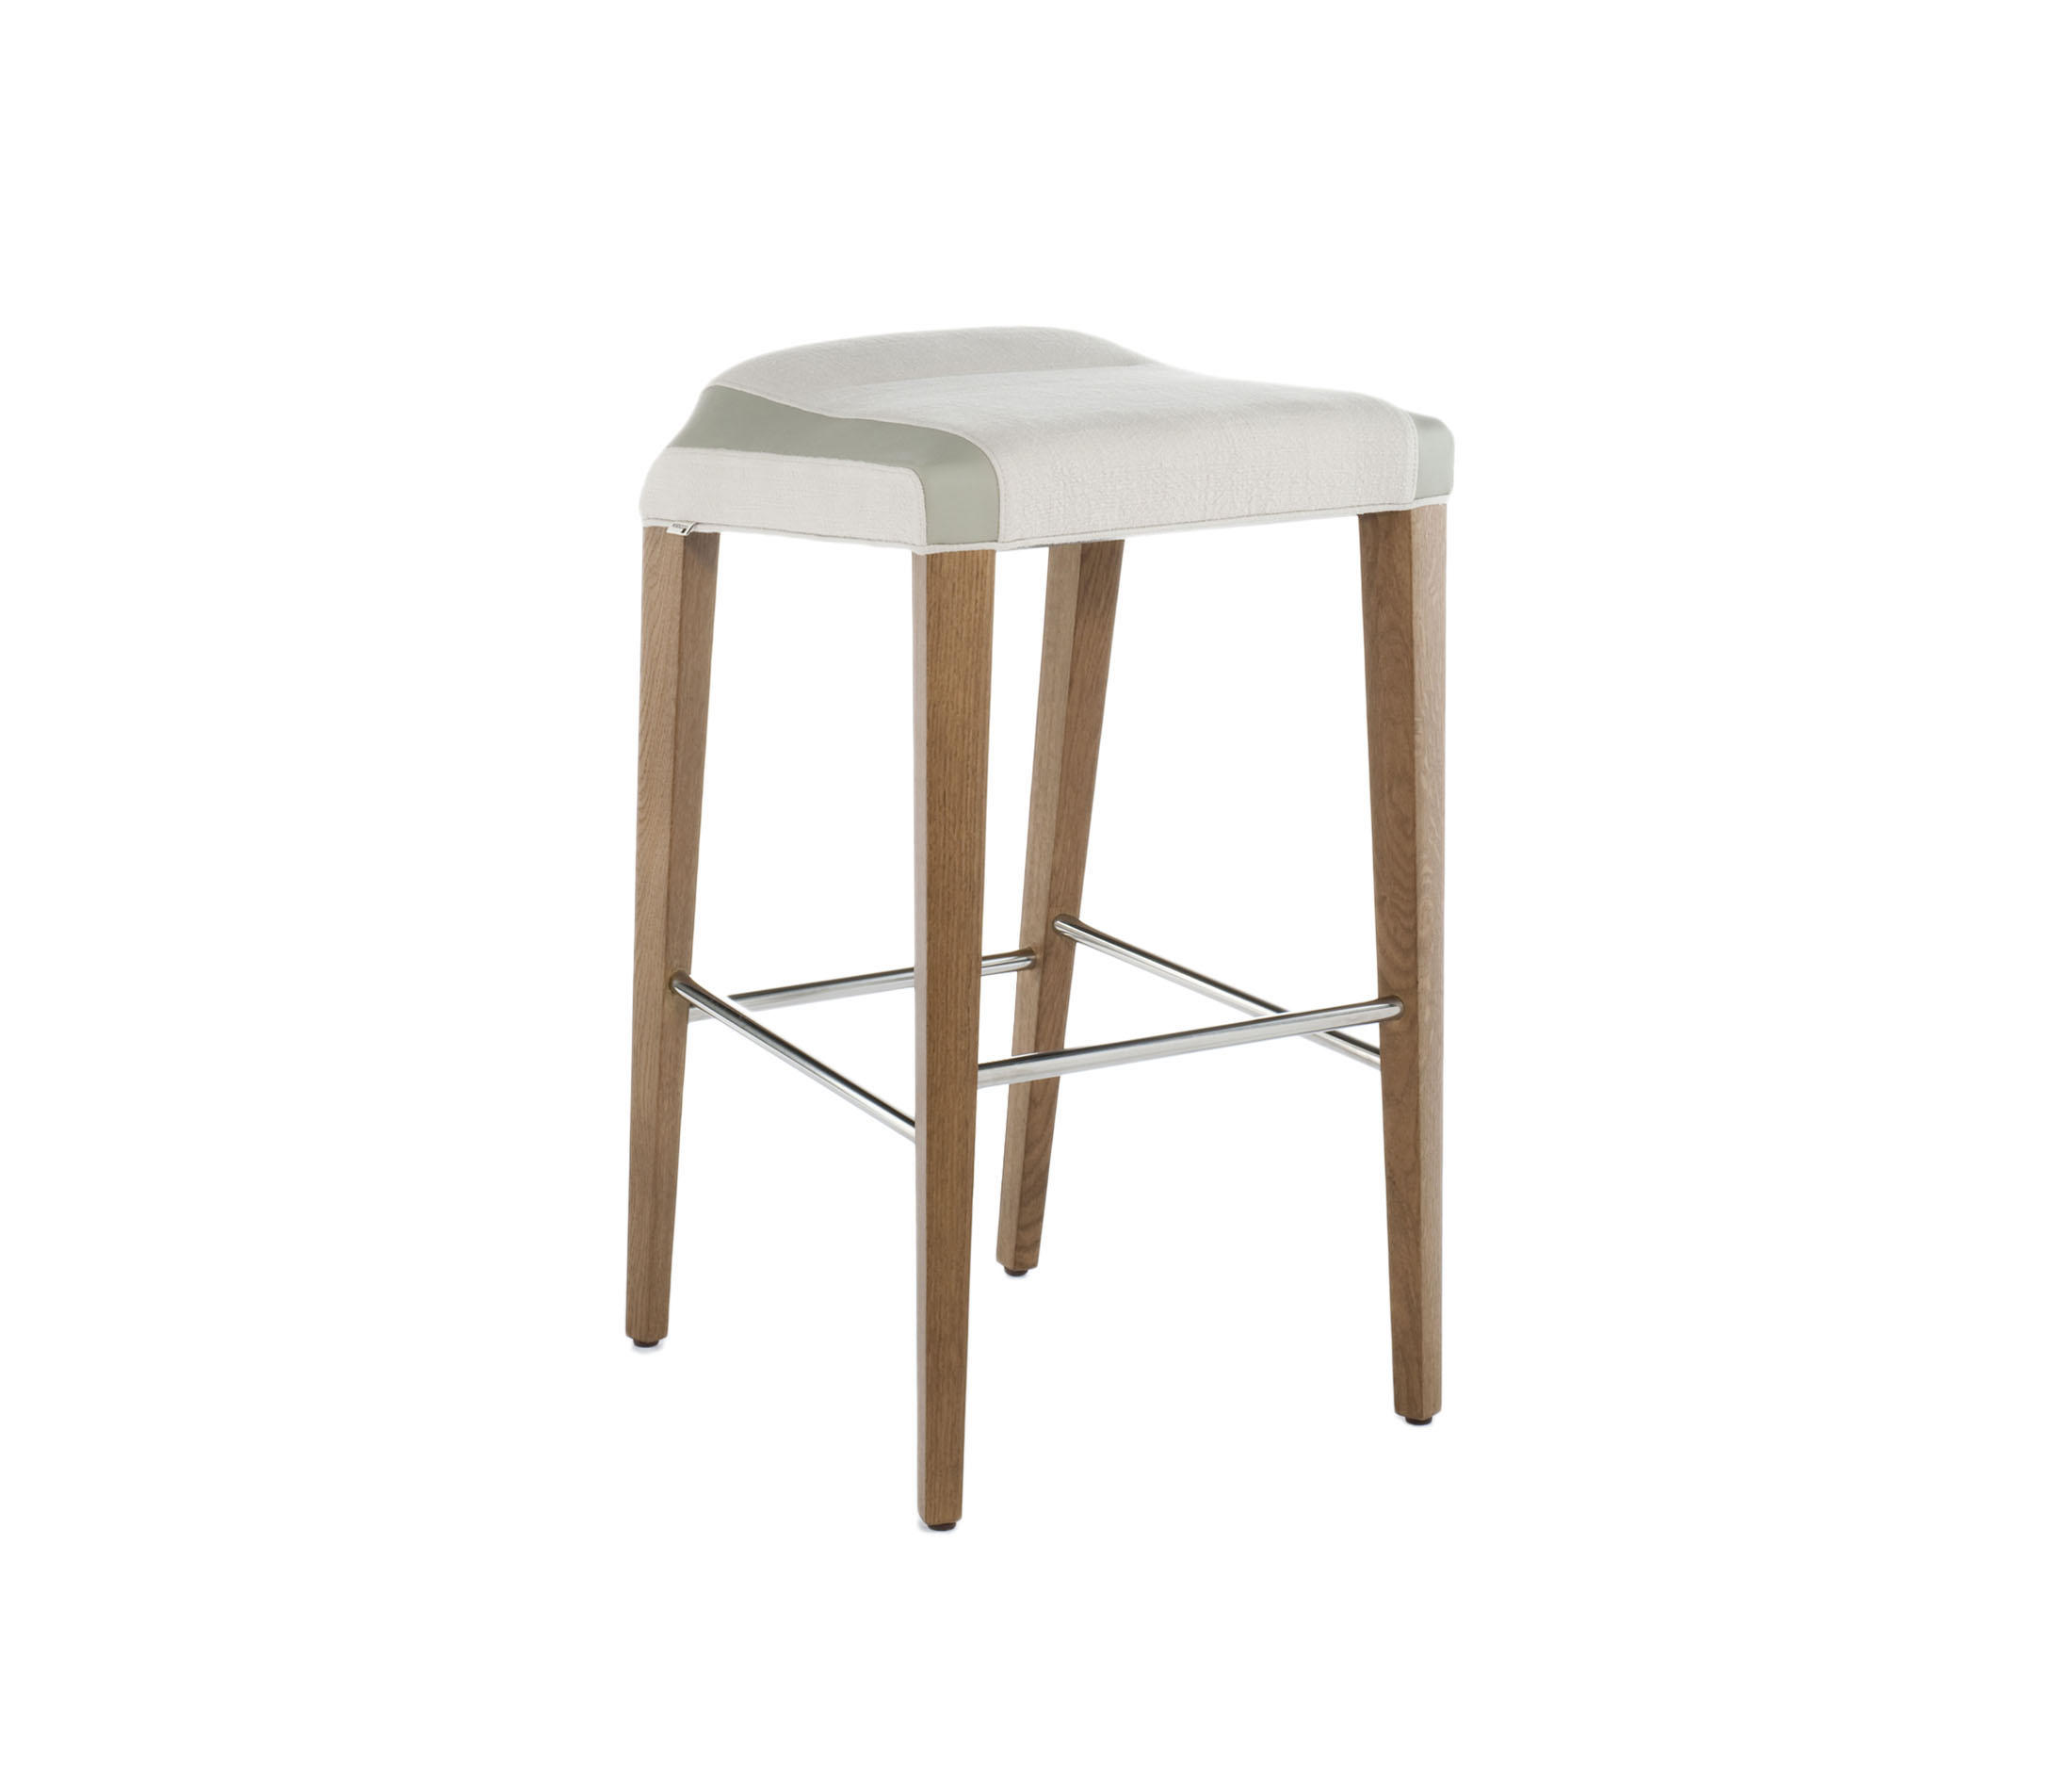 Wood Bar Stools Without Backs Bar Stools Without Backs